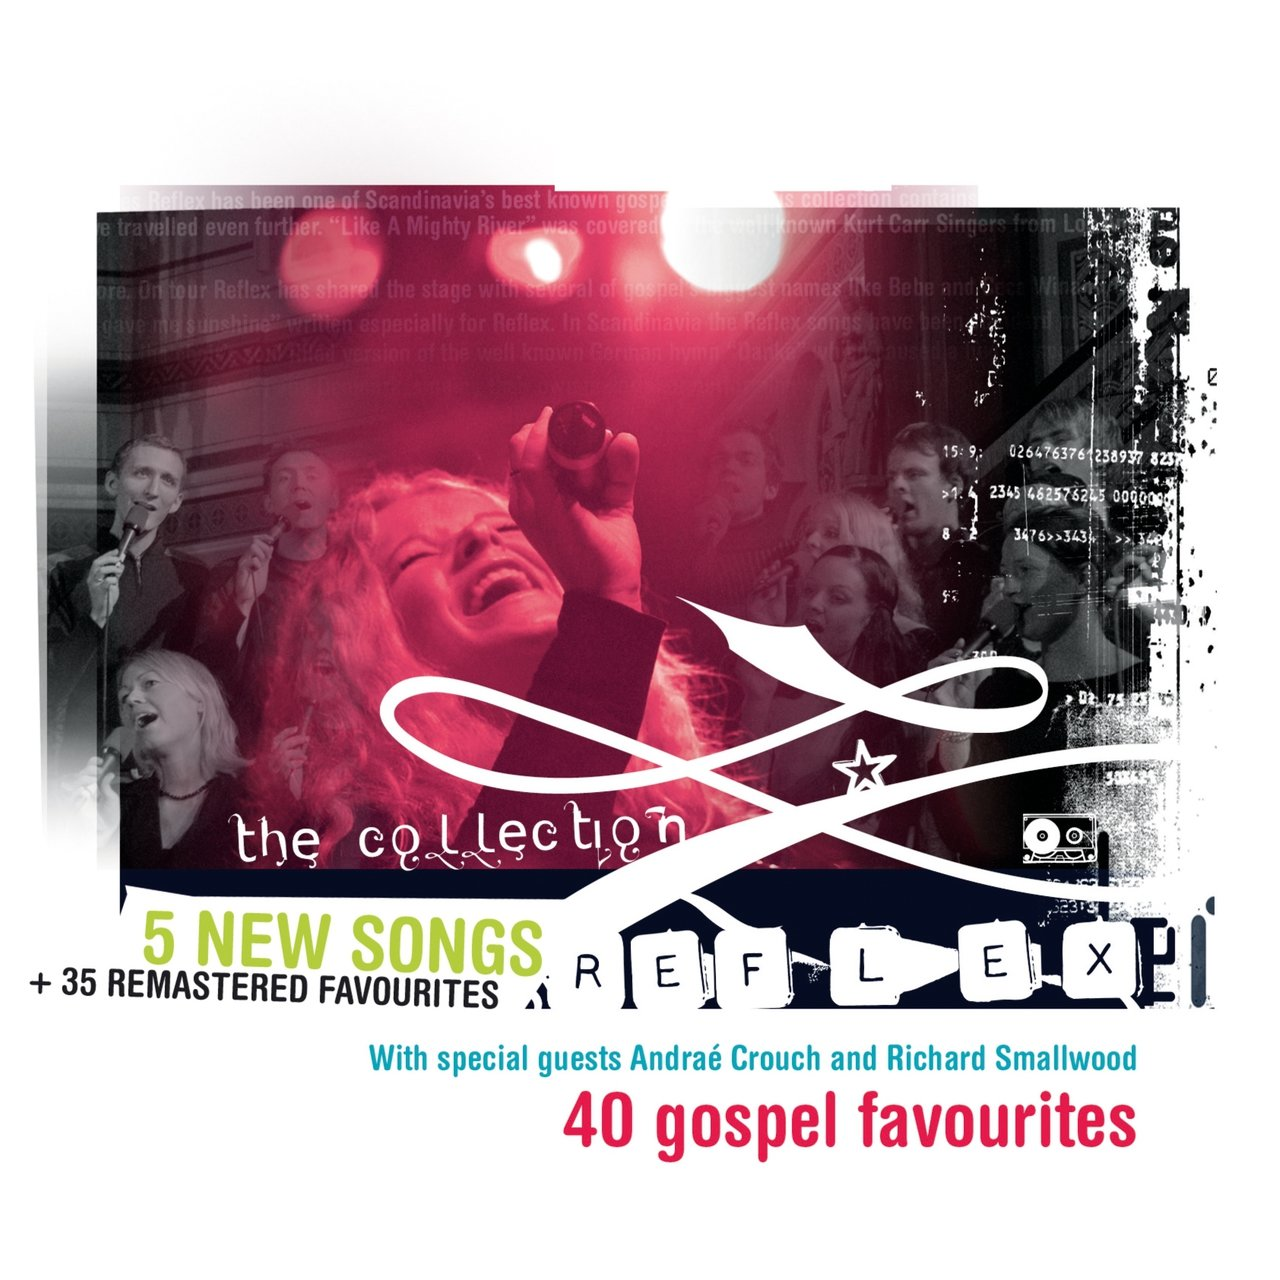 Collection The - 40 Gospel Favourites